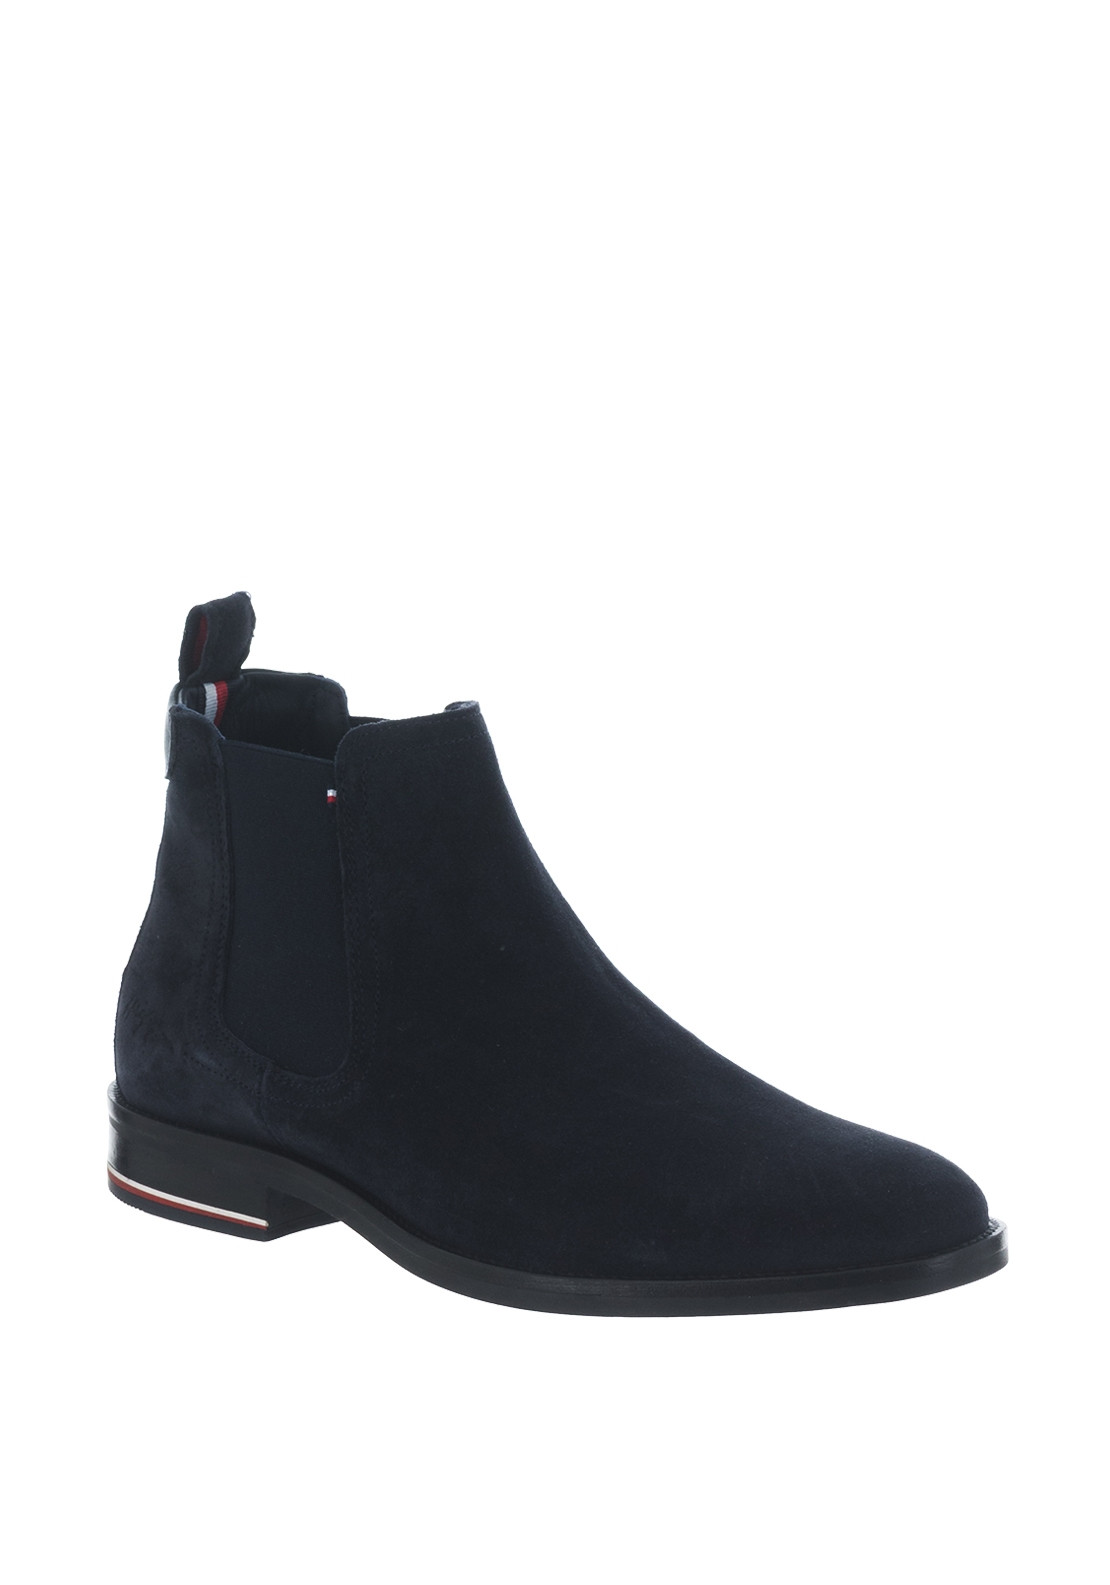 check out 6a3b1 3c65d Tommy Hilfiger Mens Signature Suede Chelsea Boot, Navy